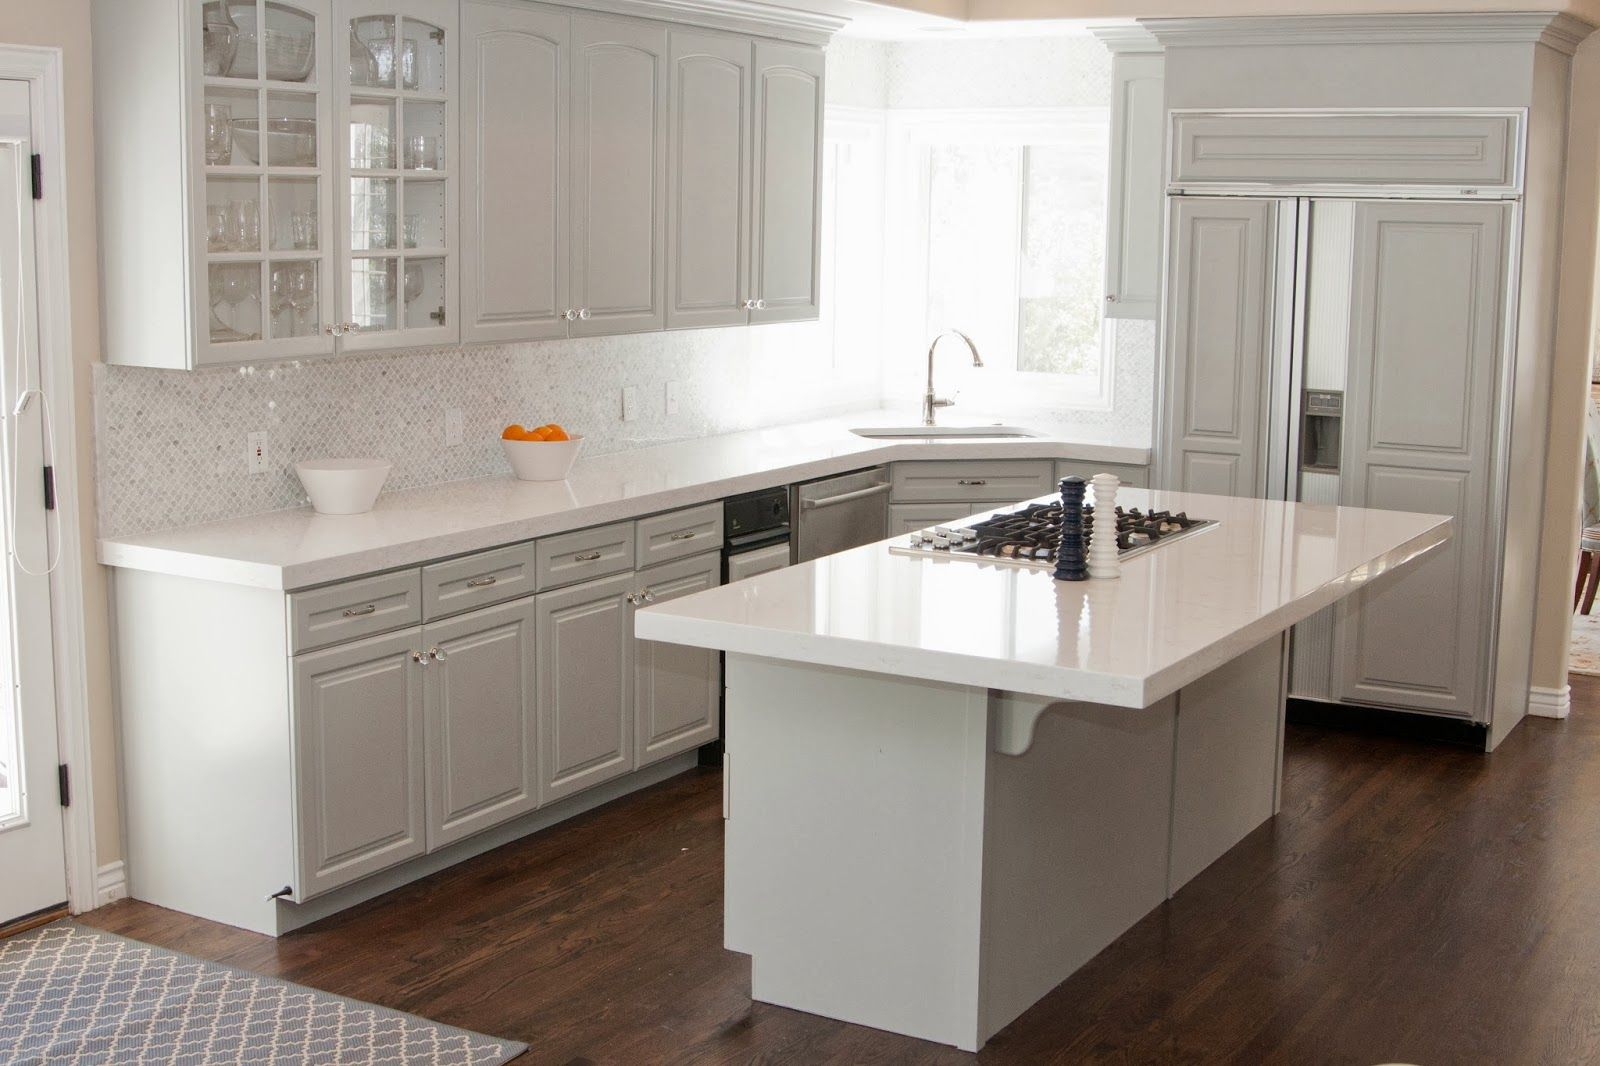 Countertop ideas for white cabinets google search for Kitchen cabinets with x